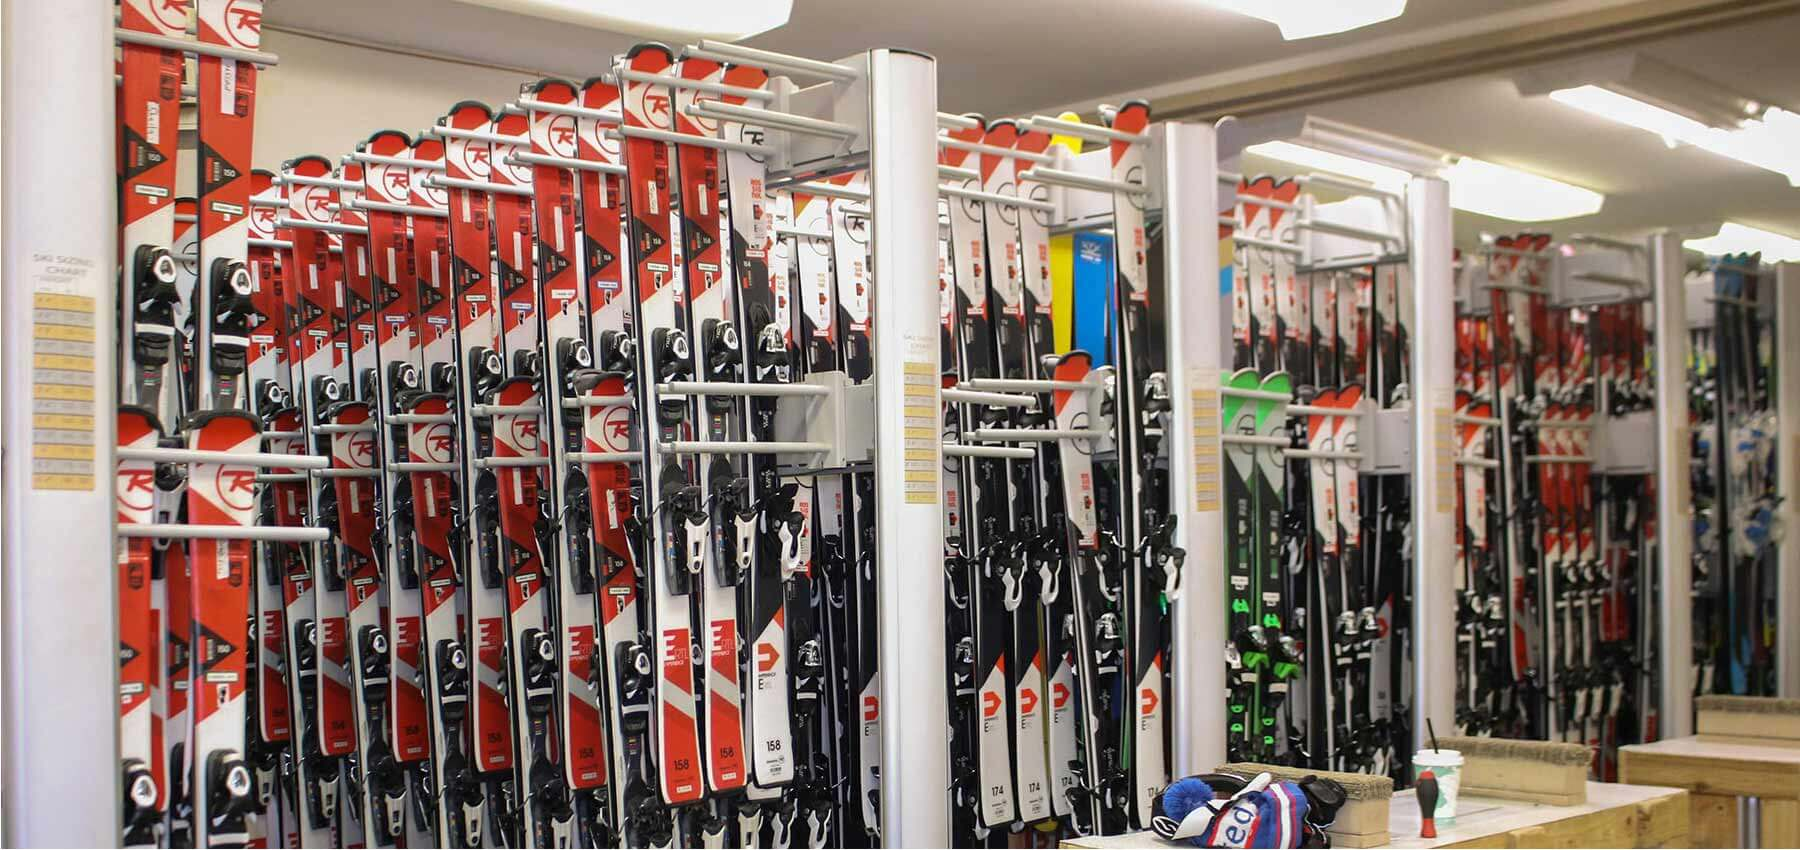 rossignol skis hanging in the rental shop